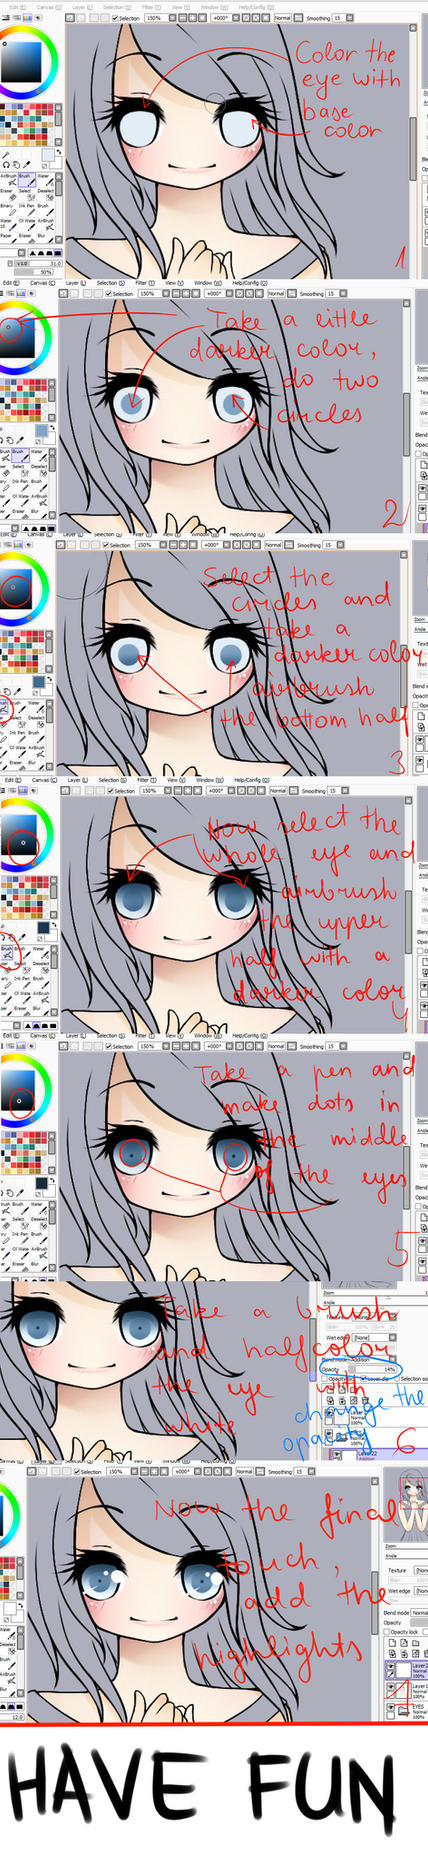 Eye coloring tutorial 2011 by soorujoosu